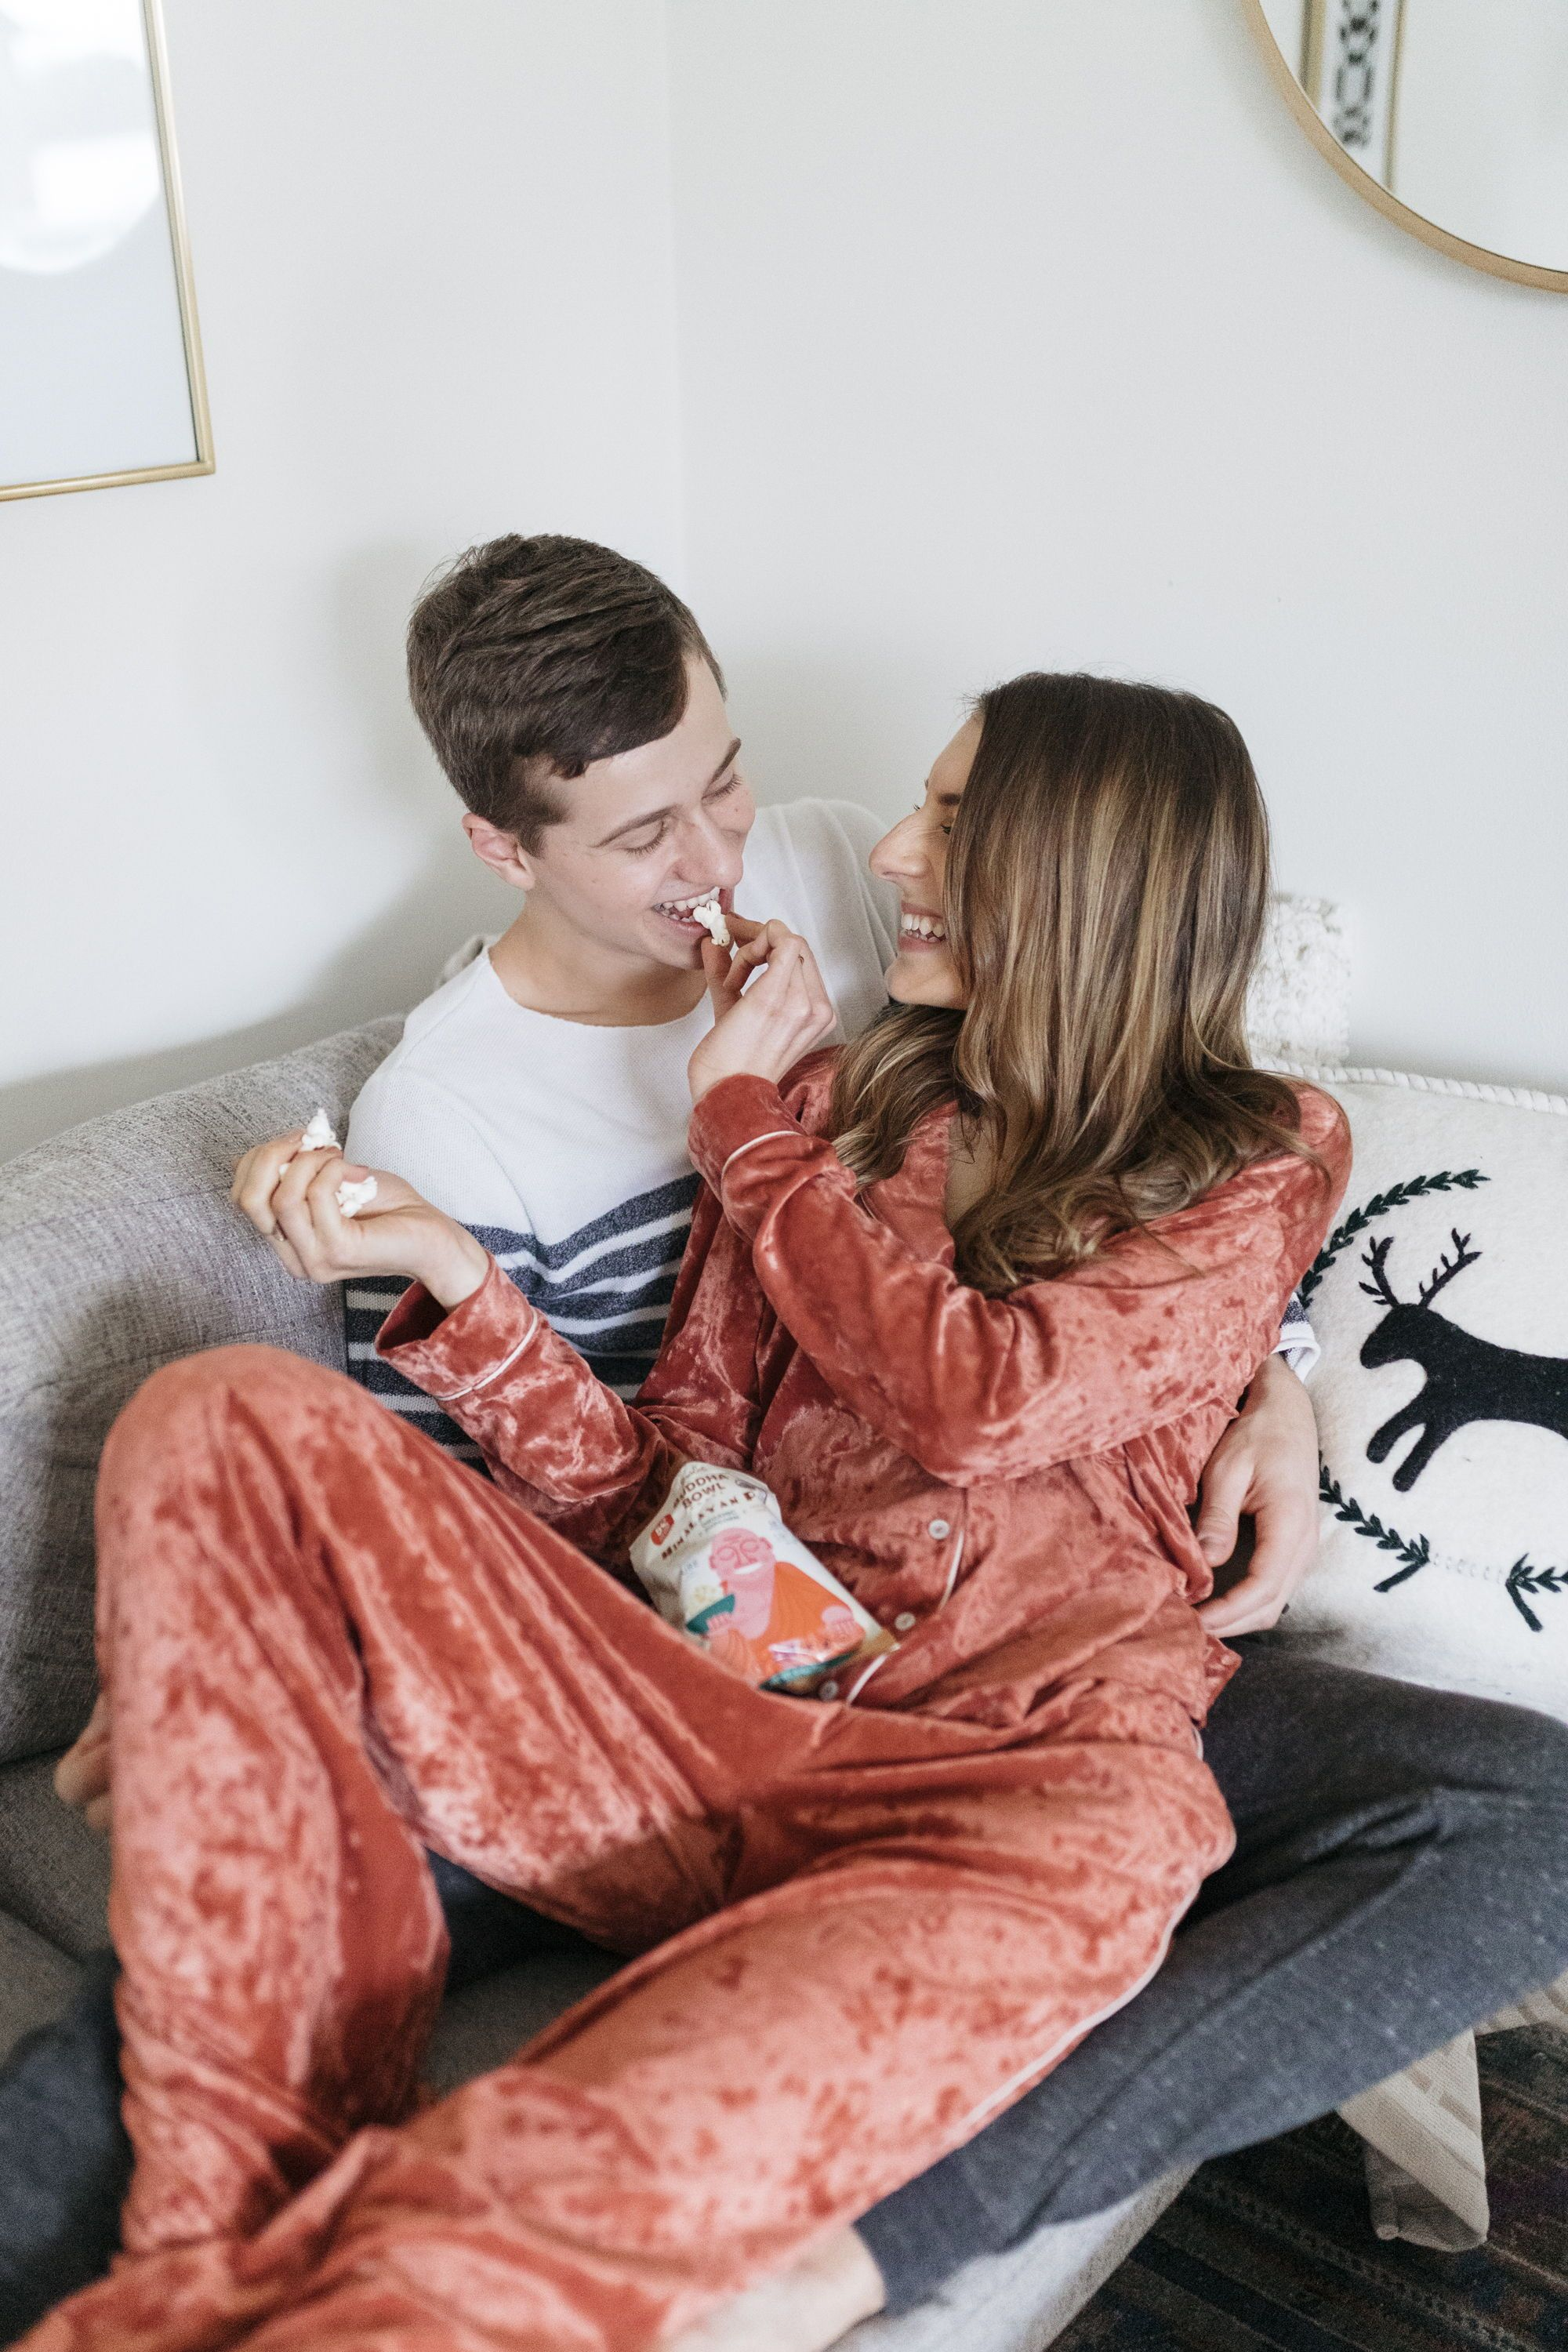 Date night at home! Check out some of my datenight ideas